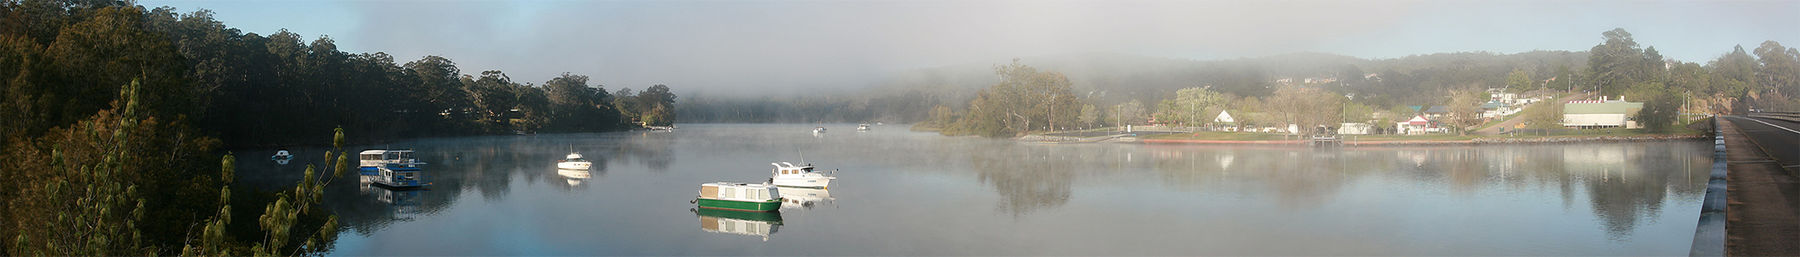 Nelligen, NSW Early Morning Mist banner.jpg